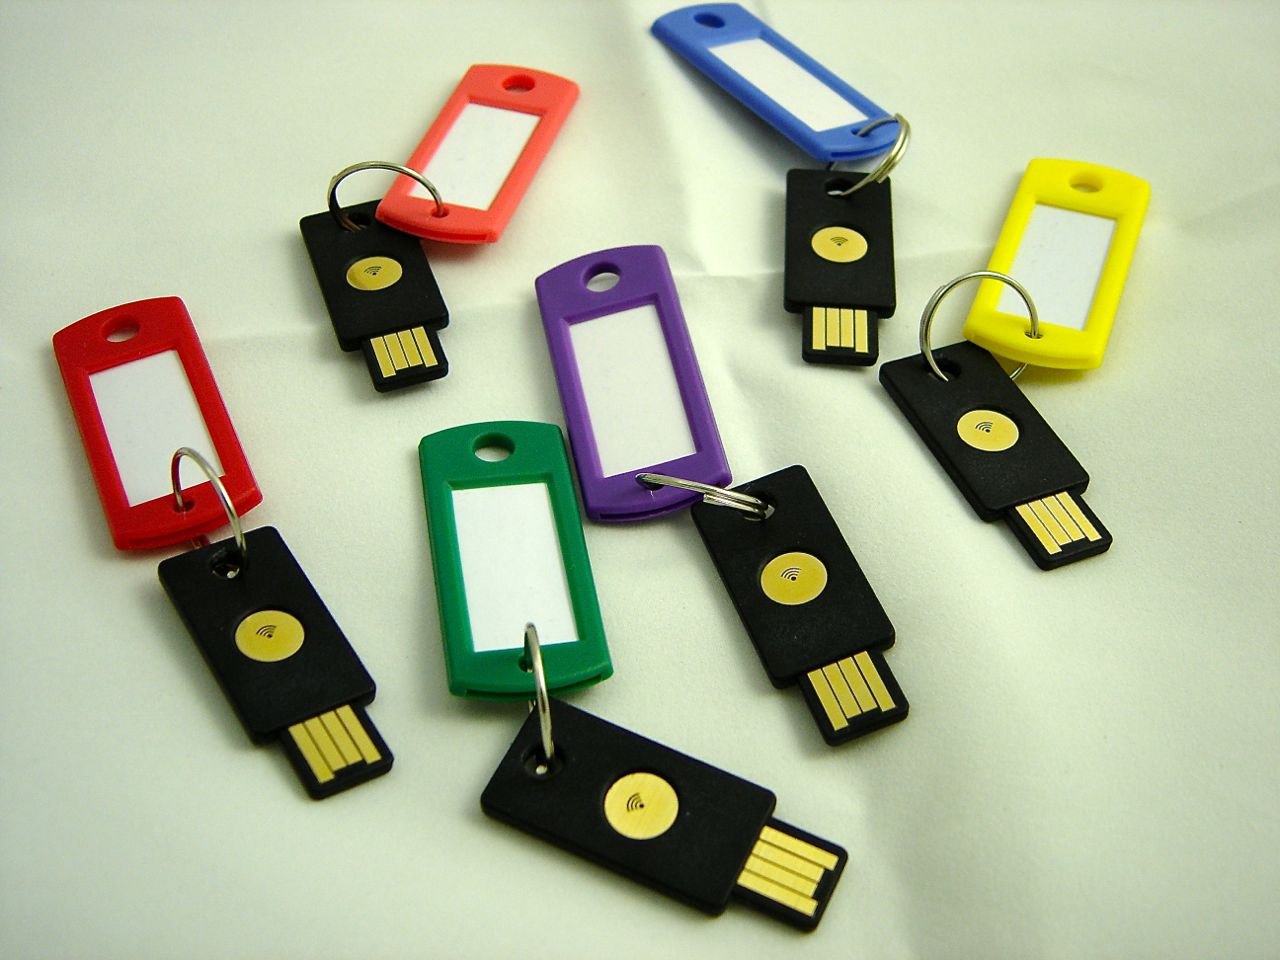 Yubikey Security Tokens at Rietta